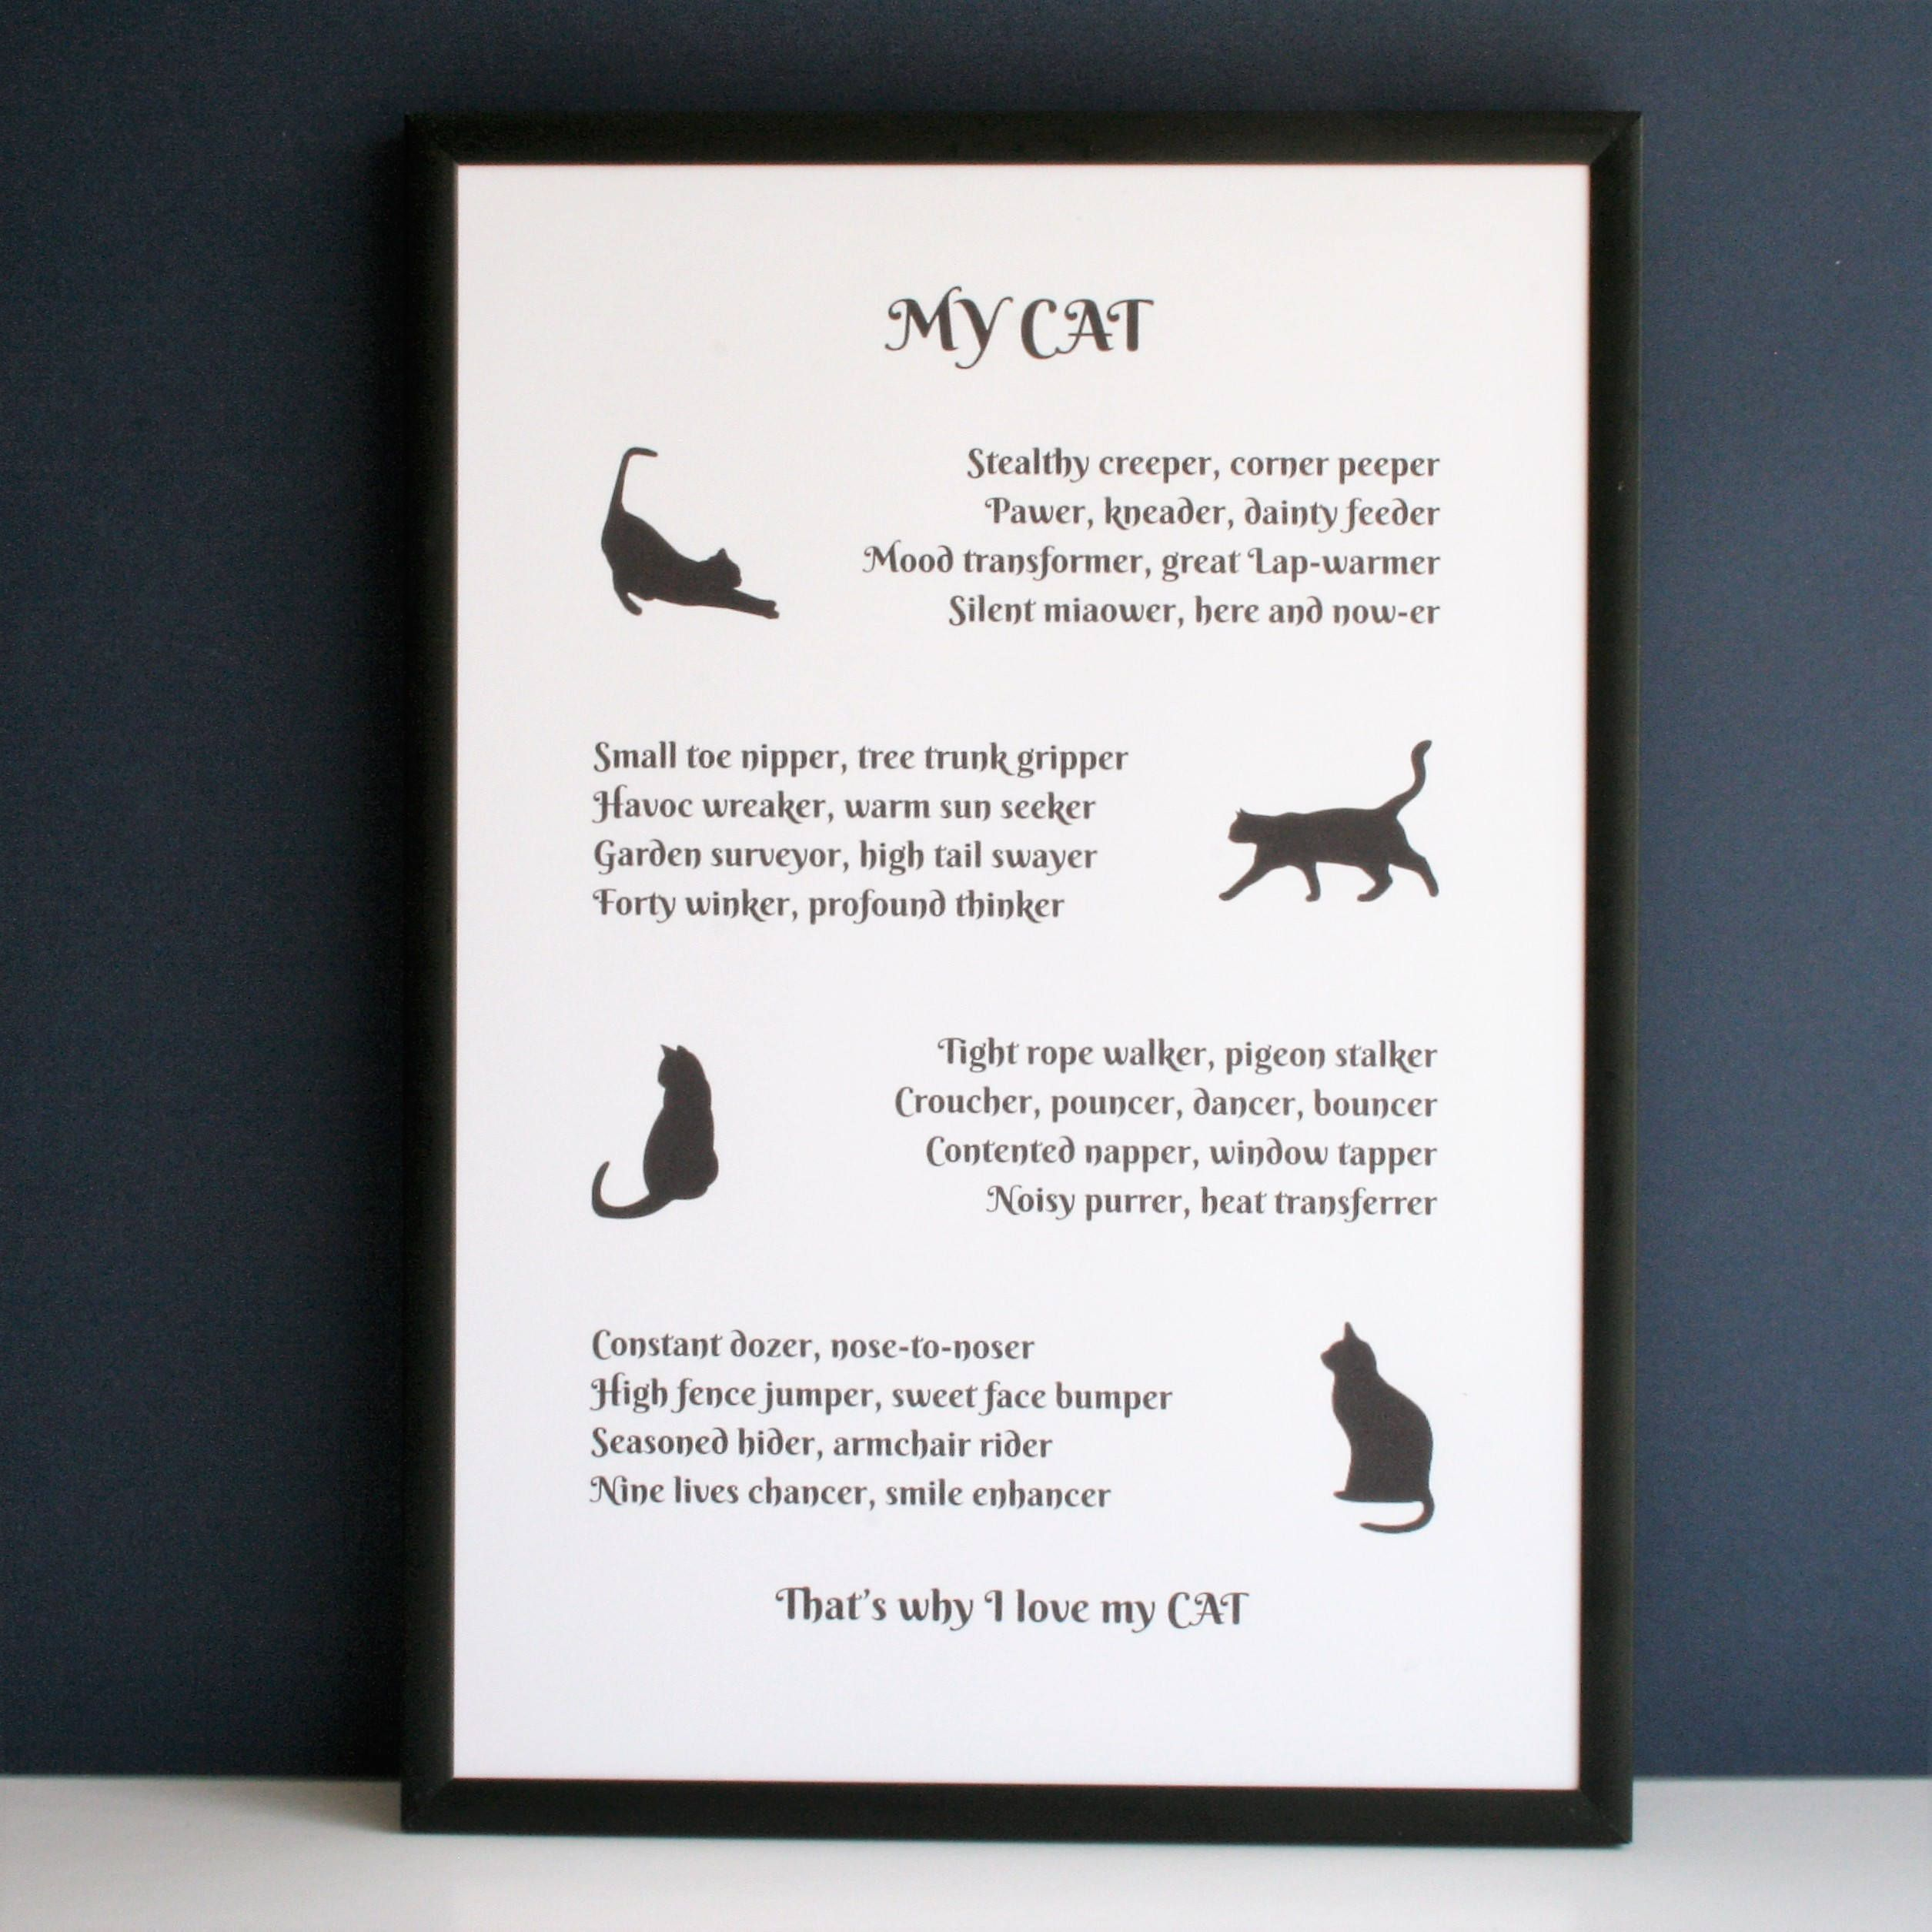 Cat Poem Cat Lover Poem Gift For Cat Lover Personalised Cat Poem By Designerpoems On Etsy Cat Poems Cat Gifts Animal Poems